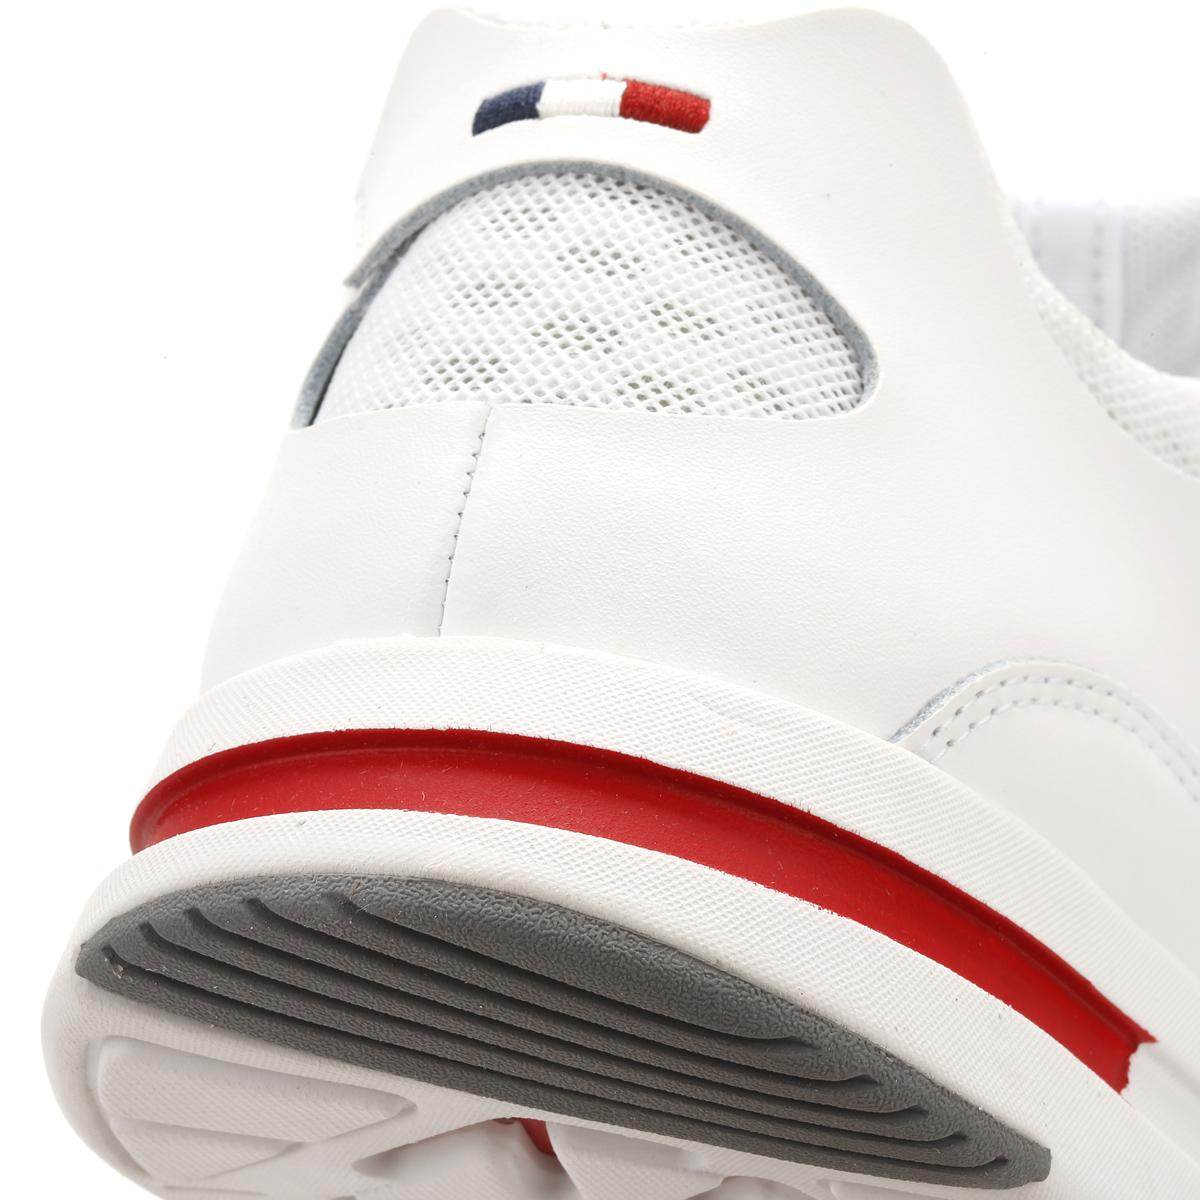 27832e1c934a Lyst - Le Coq Sportif Mens Optical White Lcs R Pure Trainers in ...